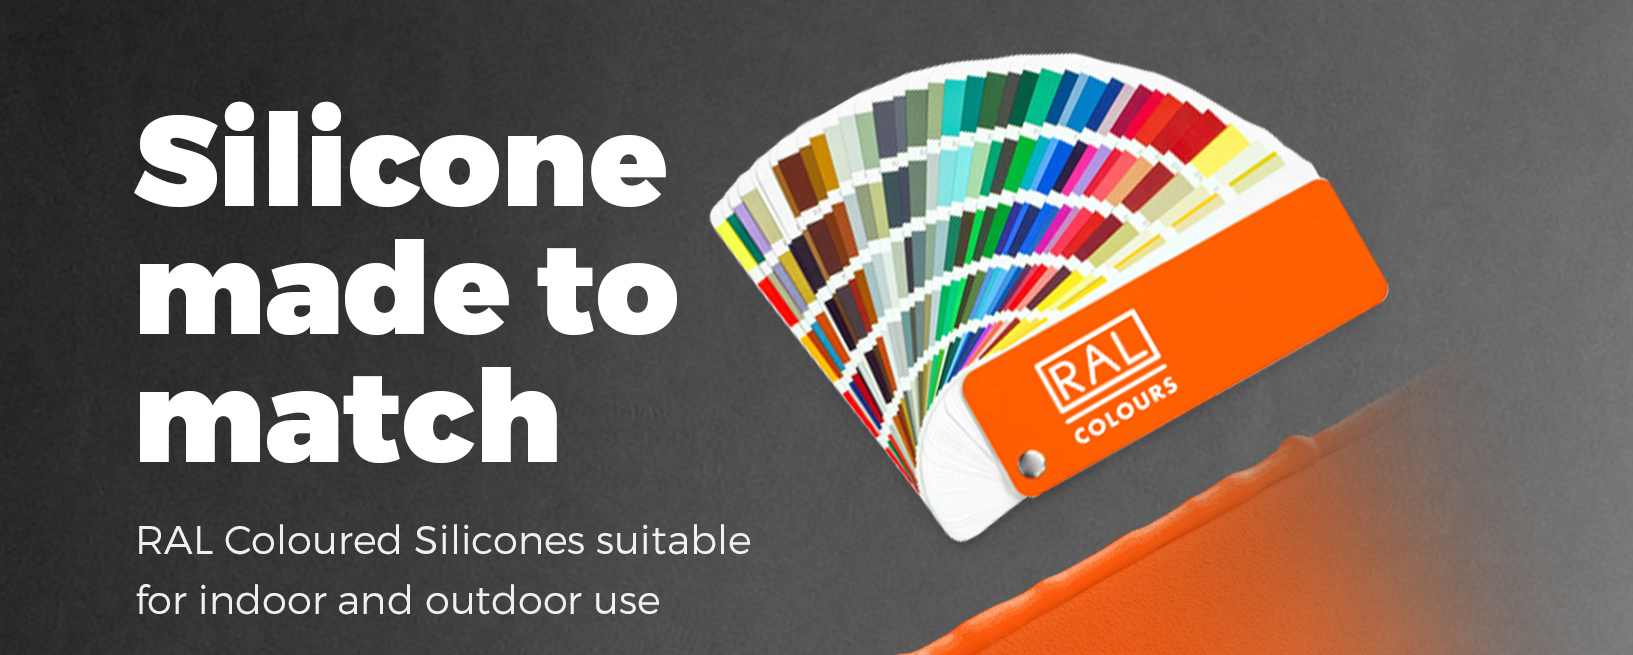 Silicone made to match. RAL Coloured Silicones suitable for indoor and outdoor use